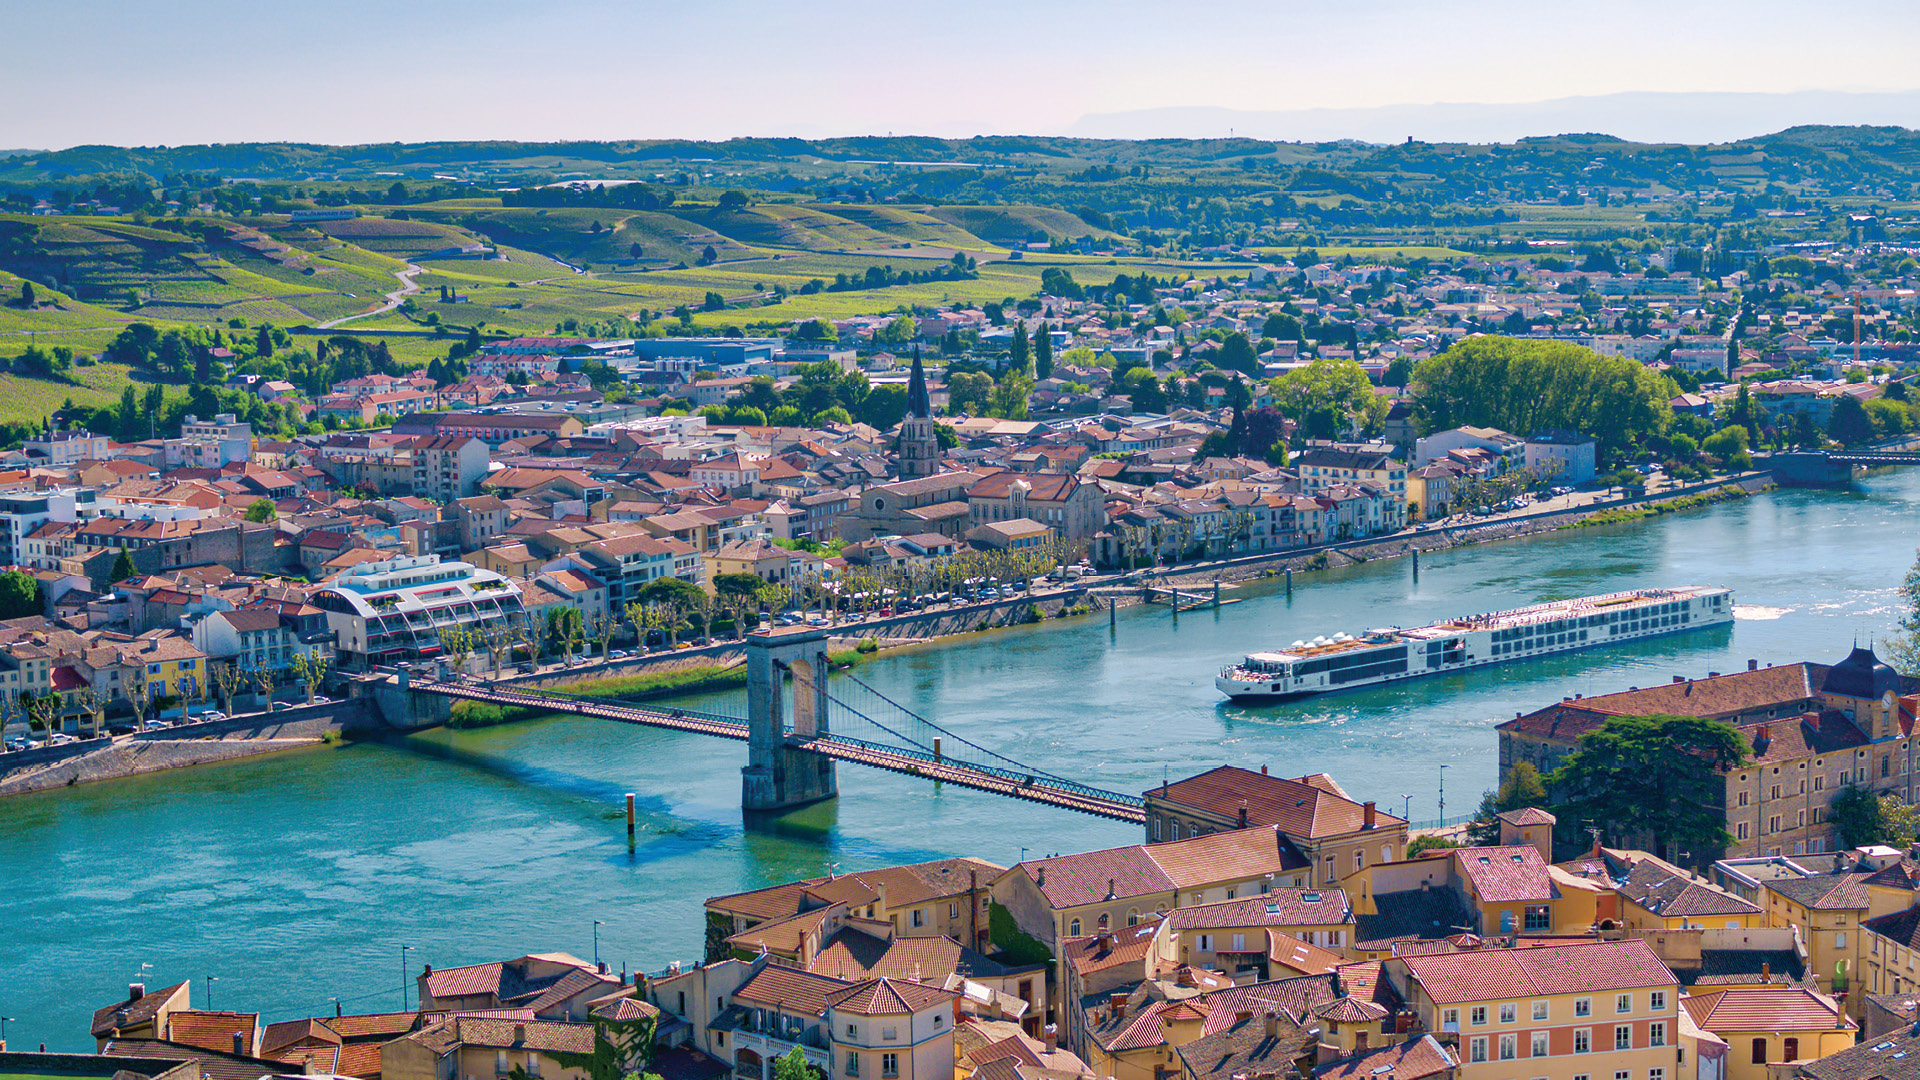 Viking River Cruises' Longships